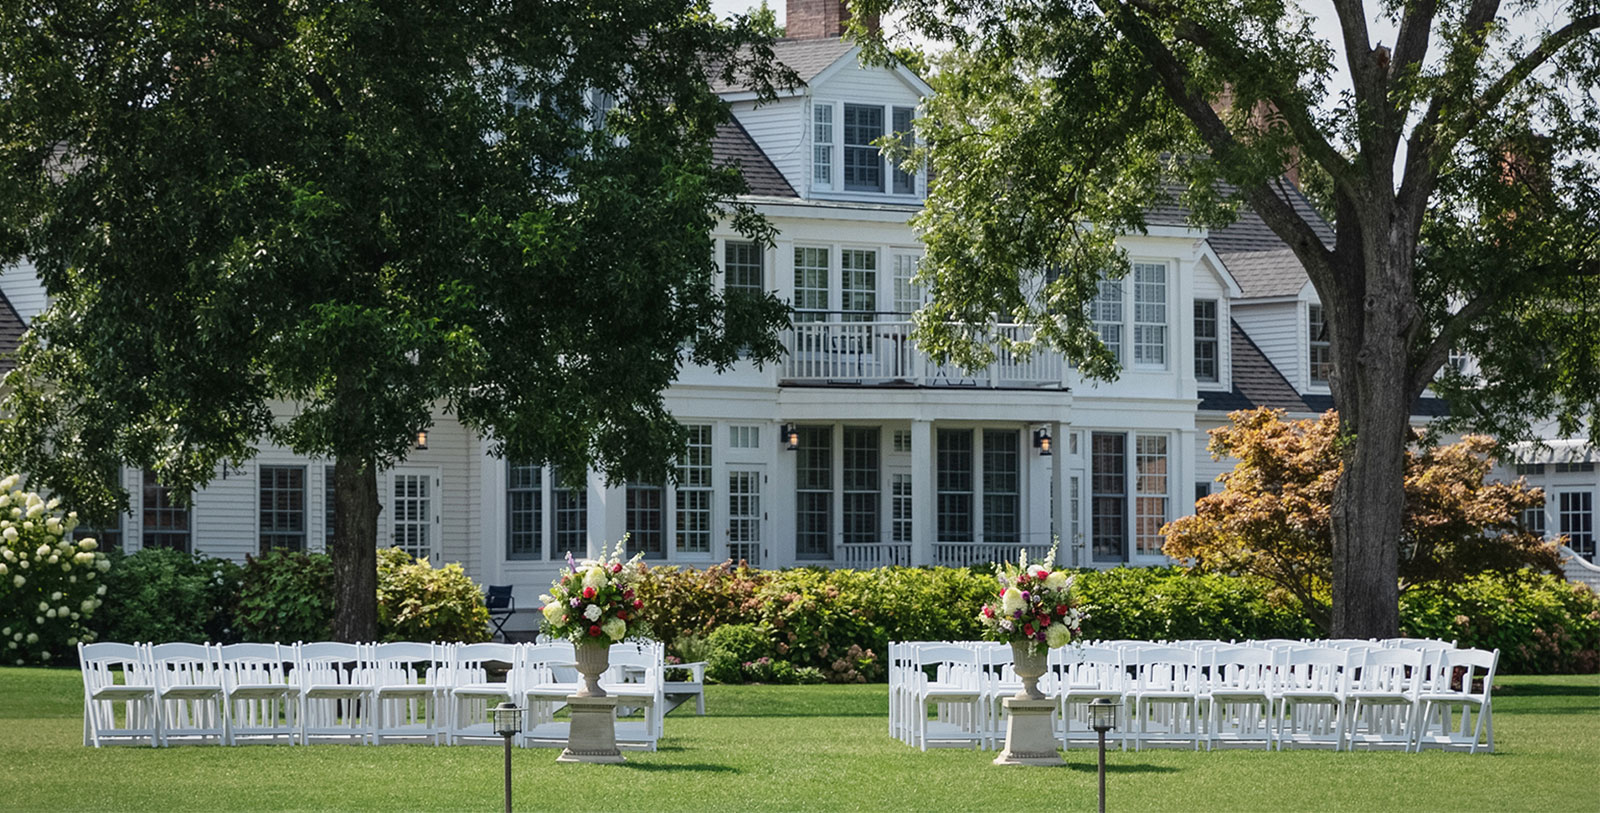 Image of Wedding Ceremony on Front Lawn, Inn at Perry Cabin in St. Michaels, Maryland, 1816, Member of Historic Hotels of America, Weddings